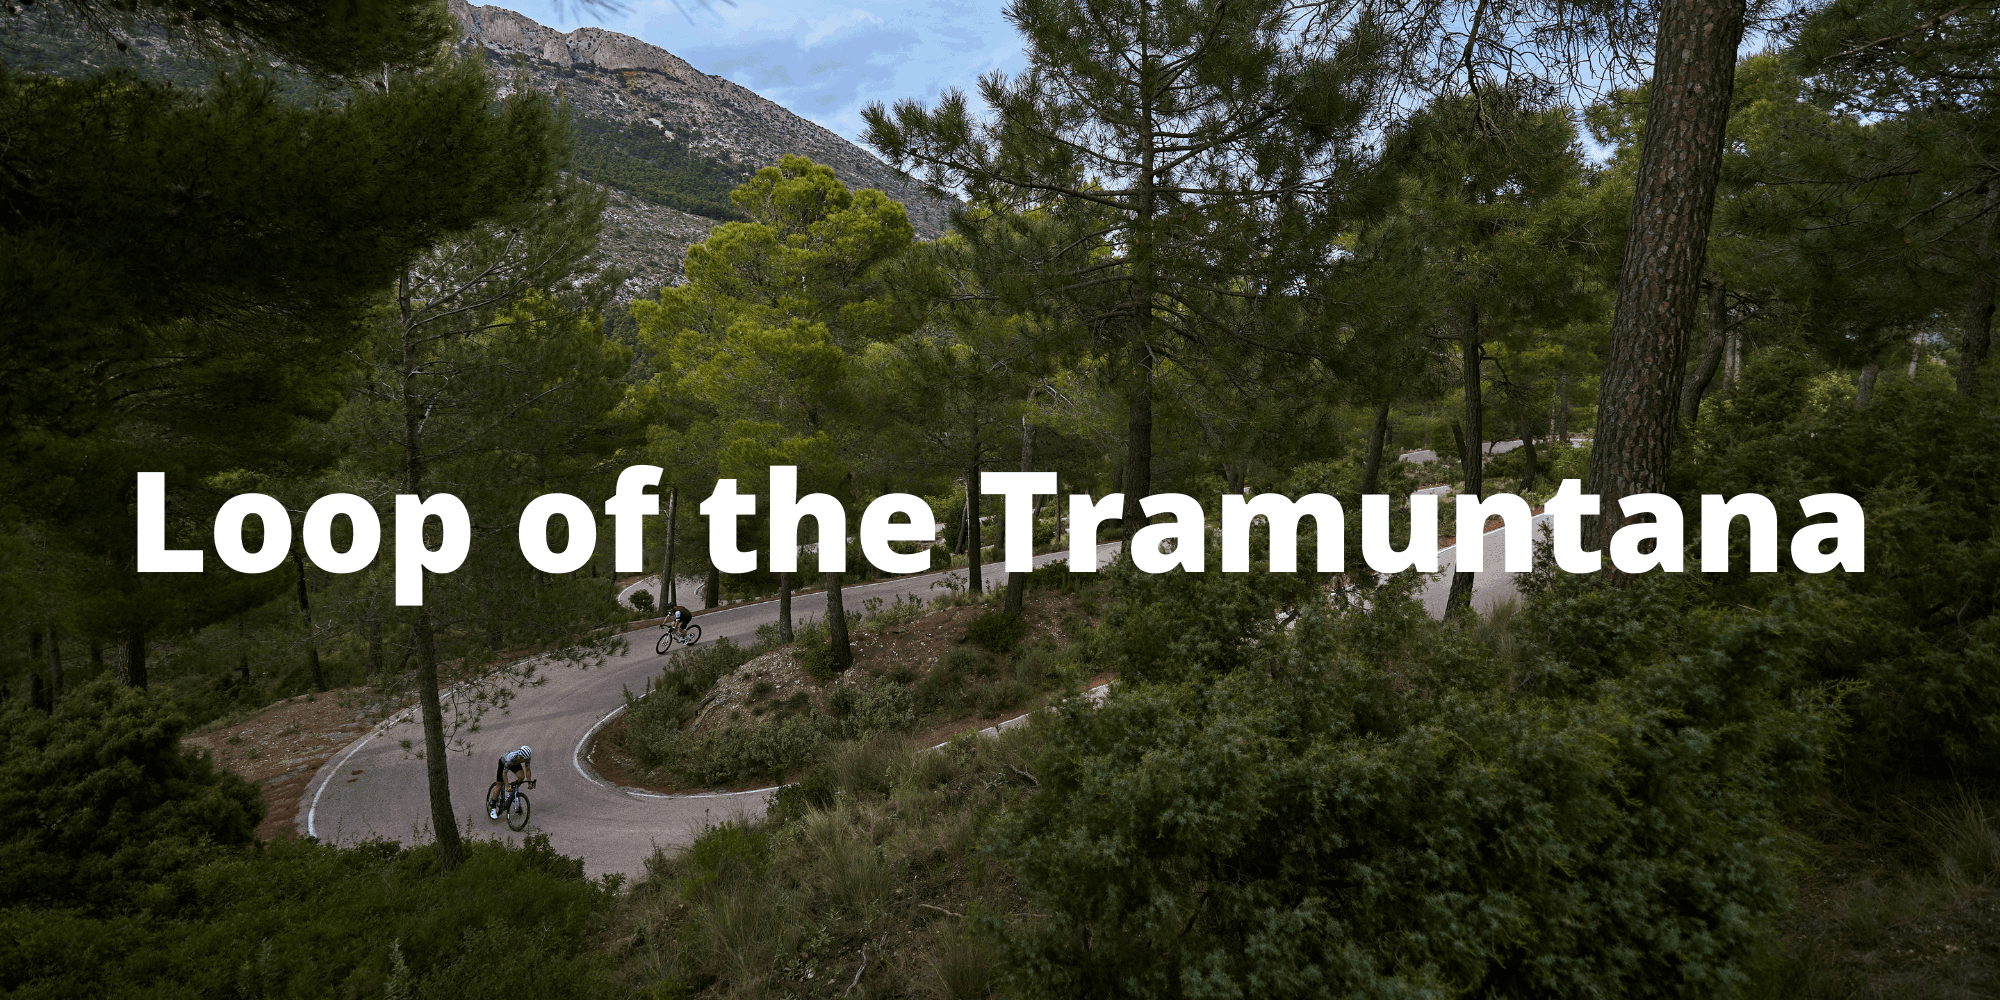 view of 2 cyclists climbing a switchback road in the Tramuntana mountains in Mallorca